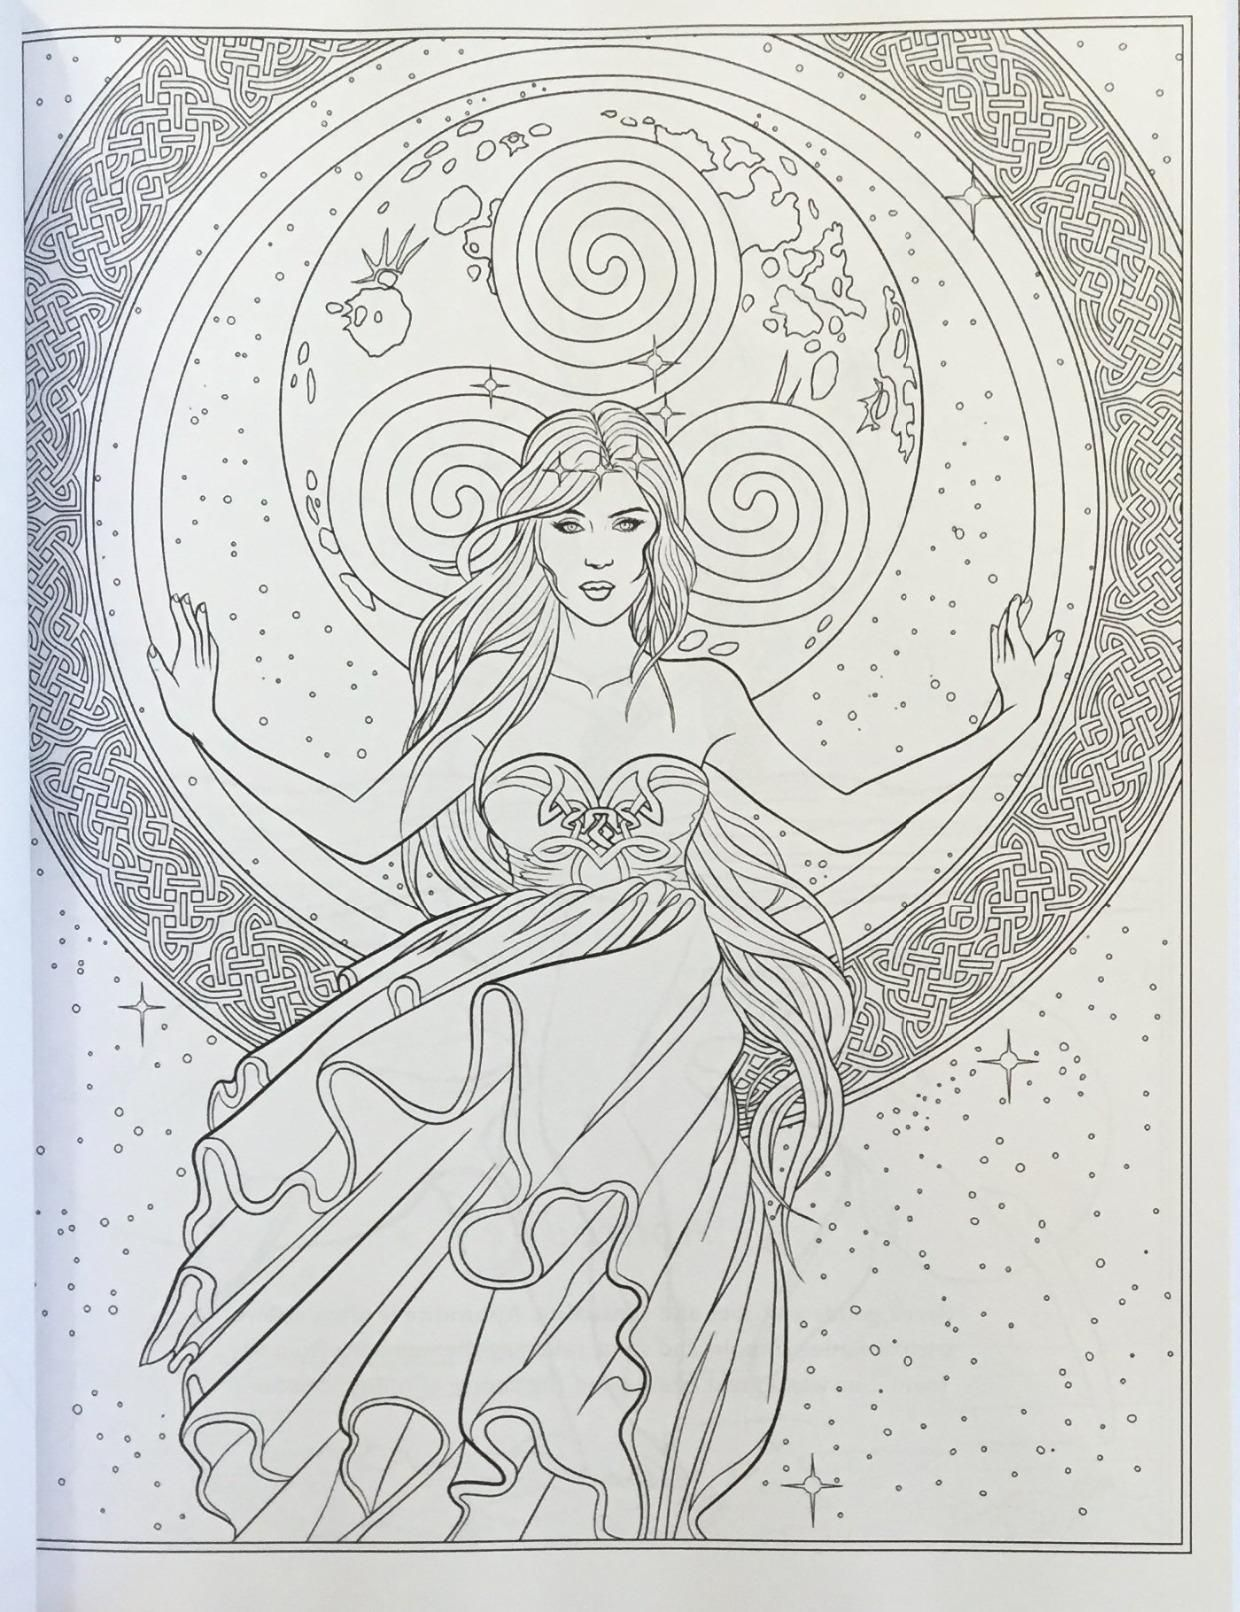 Fairy art coloring book by selina fenech - Colouring Pages Adult Coloring Pages Coloring Books Bullet Journal Copic Art Pagan Lightbox Mermaids Coloring